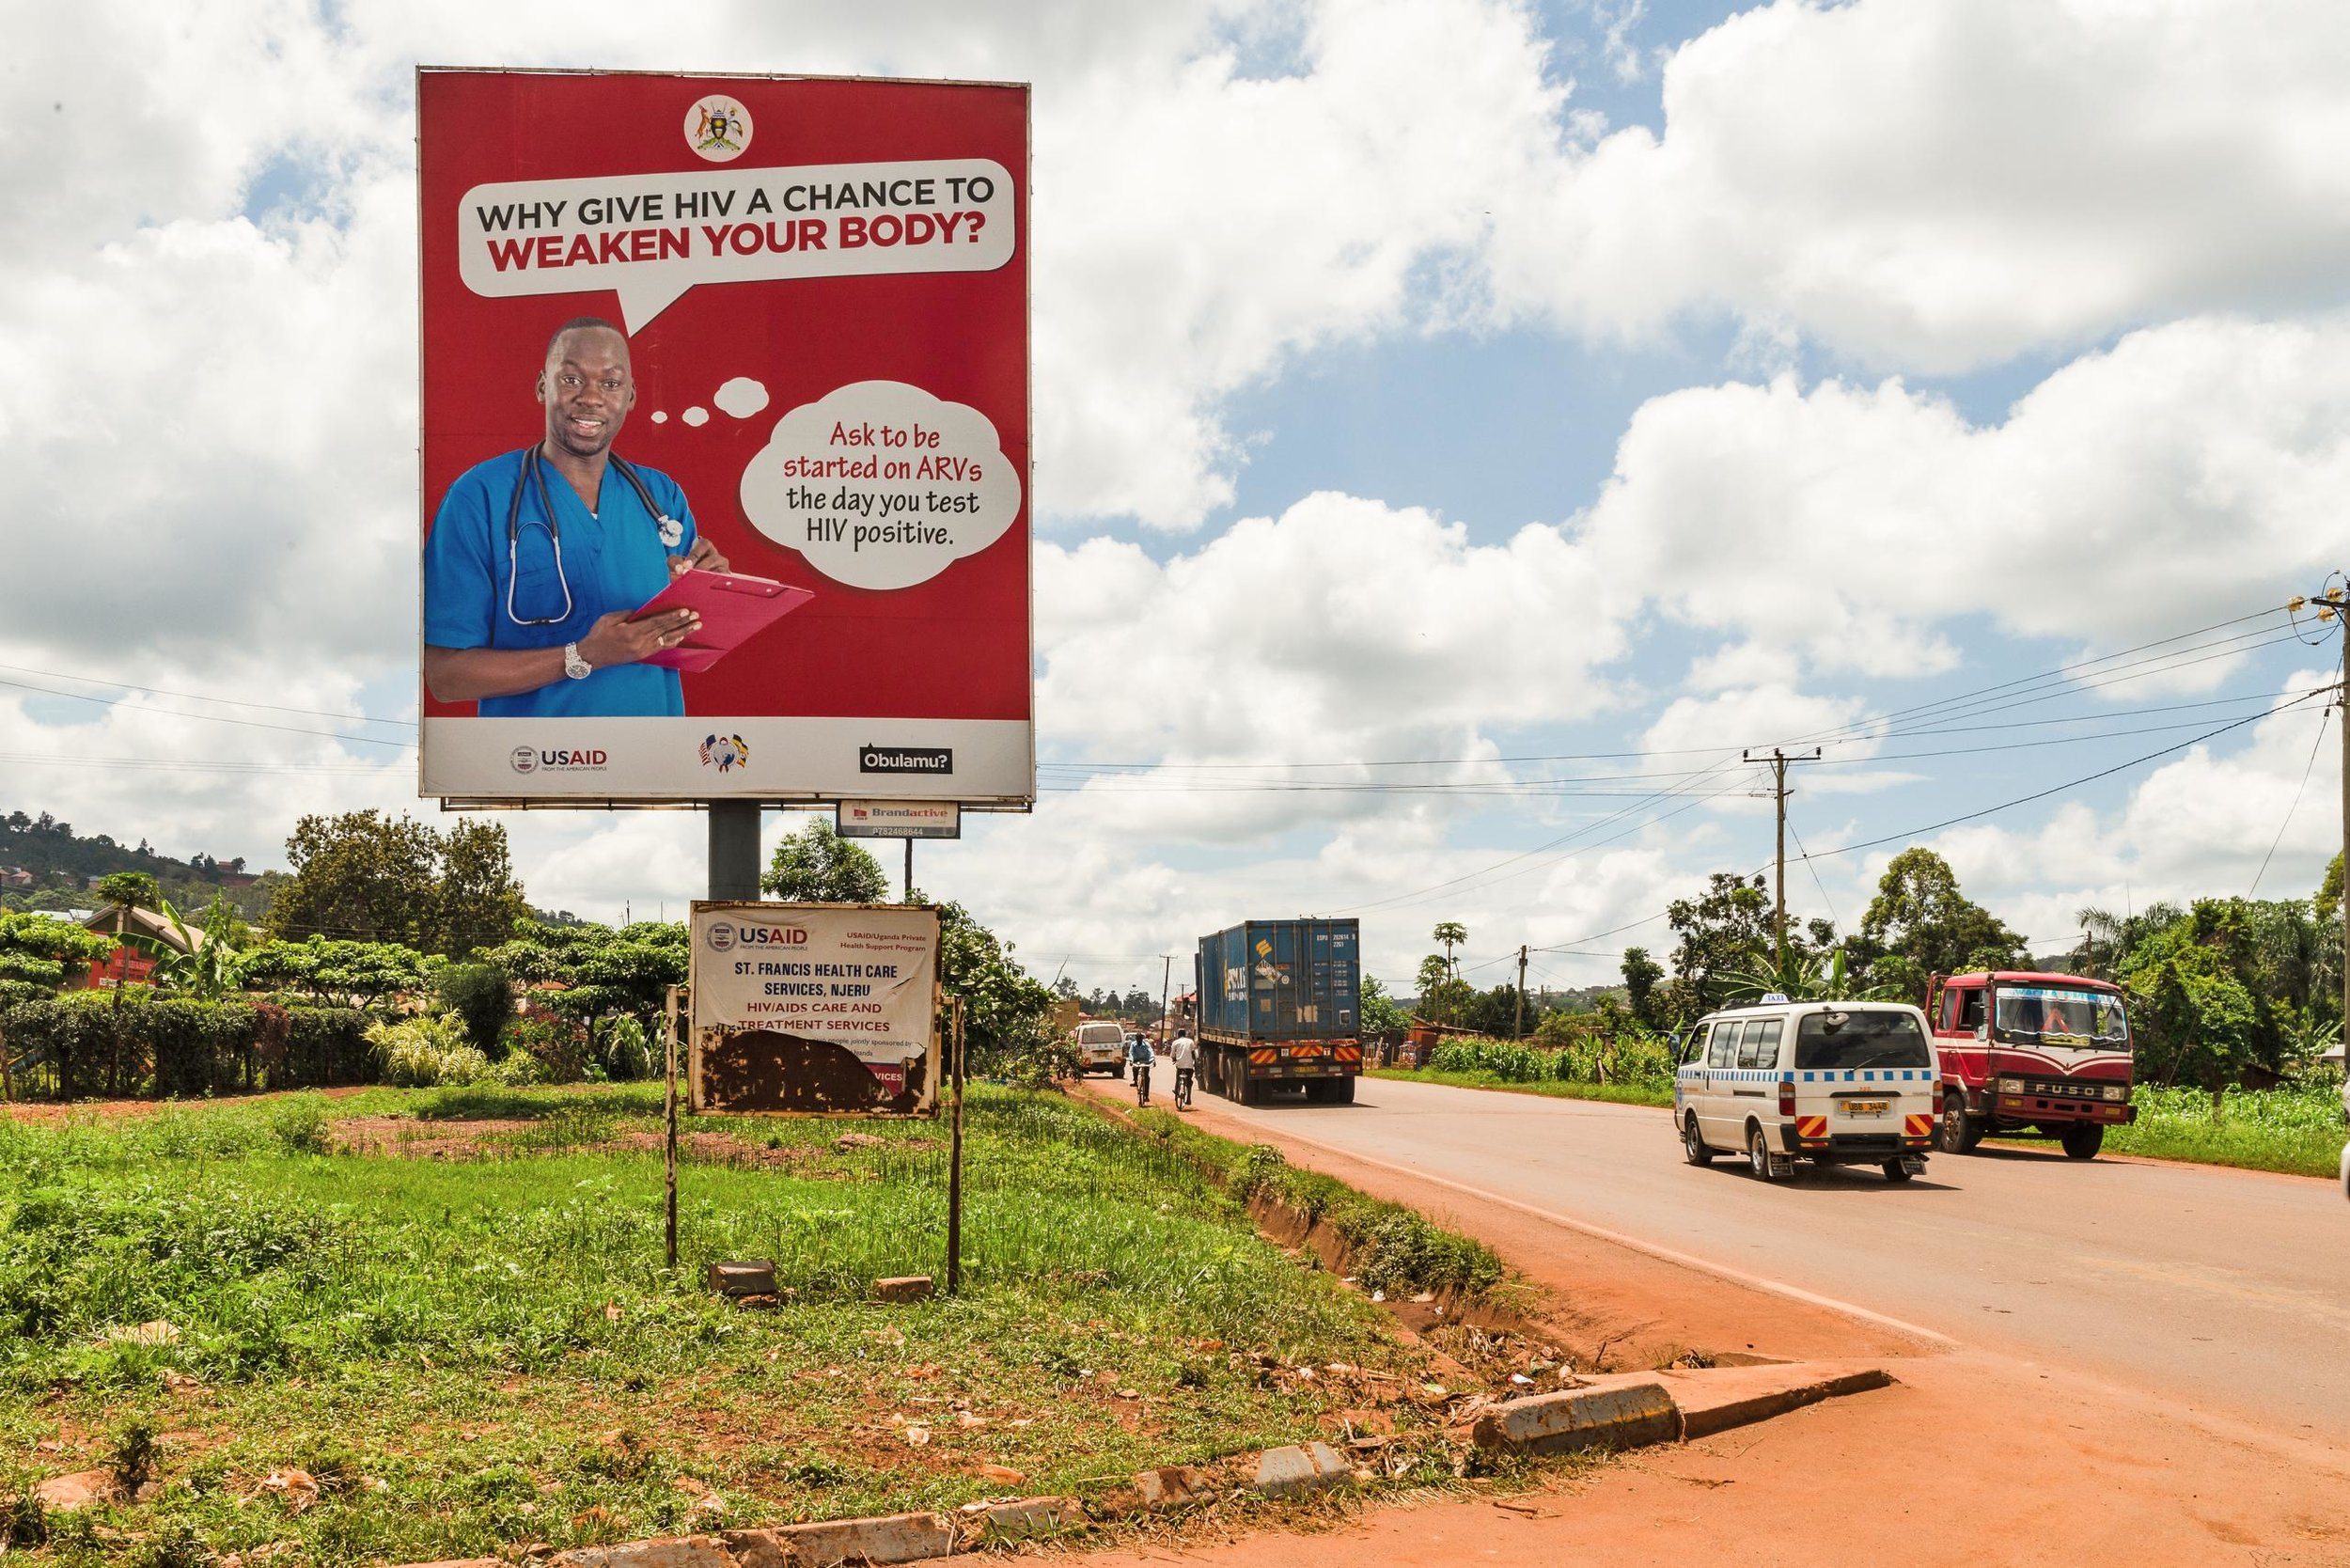 A billboard sponsored by The United States Agency for International Development (USAID) and Uganda's Ministry of Health encourages the public to test and treat themselves for HIV in Jinja, Uganda. Photo: PRI/Katie G. Nelson